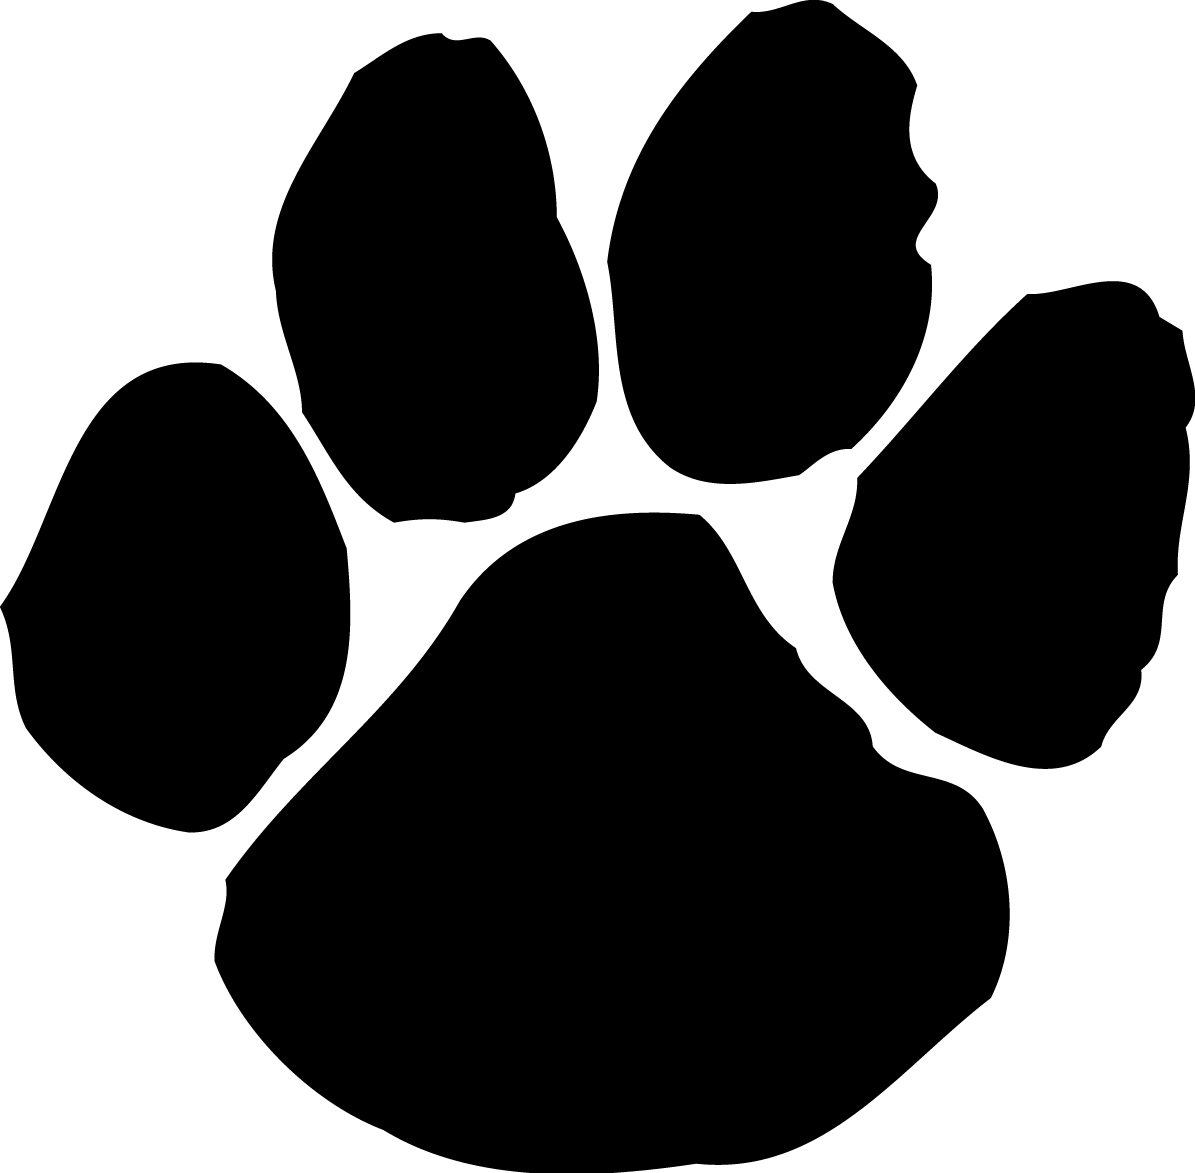 Pawprint clipart clip stock Panther Paws Clipart | Free download best Panther Paws Clipart on ... clip stock